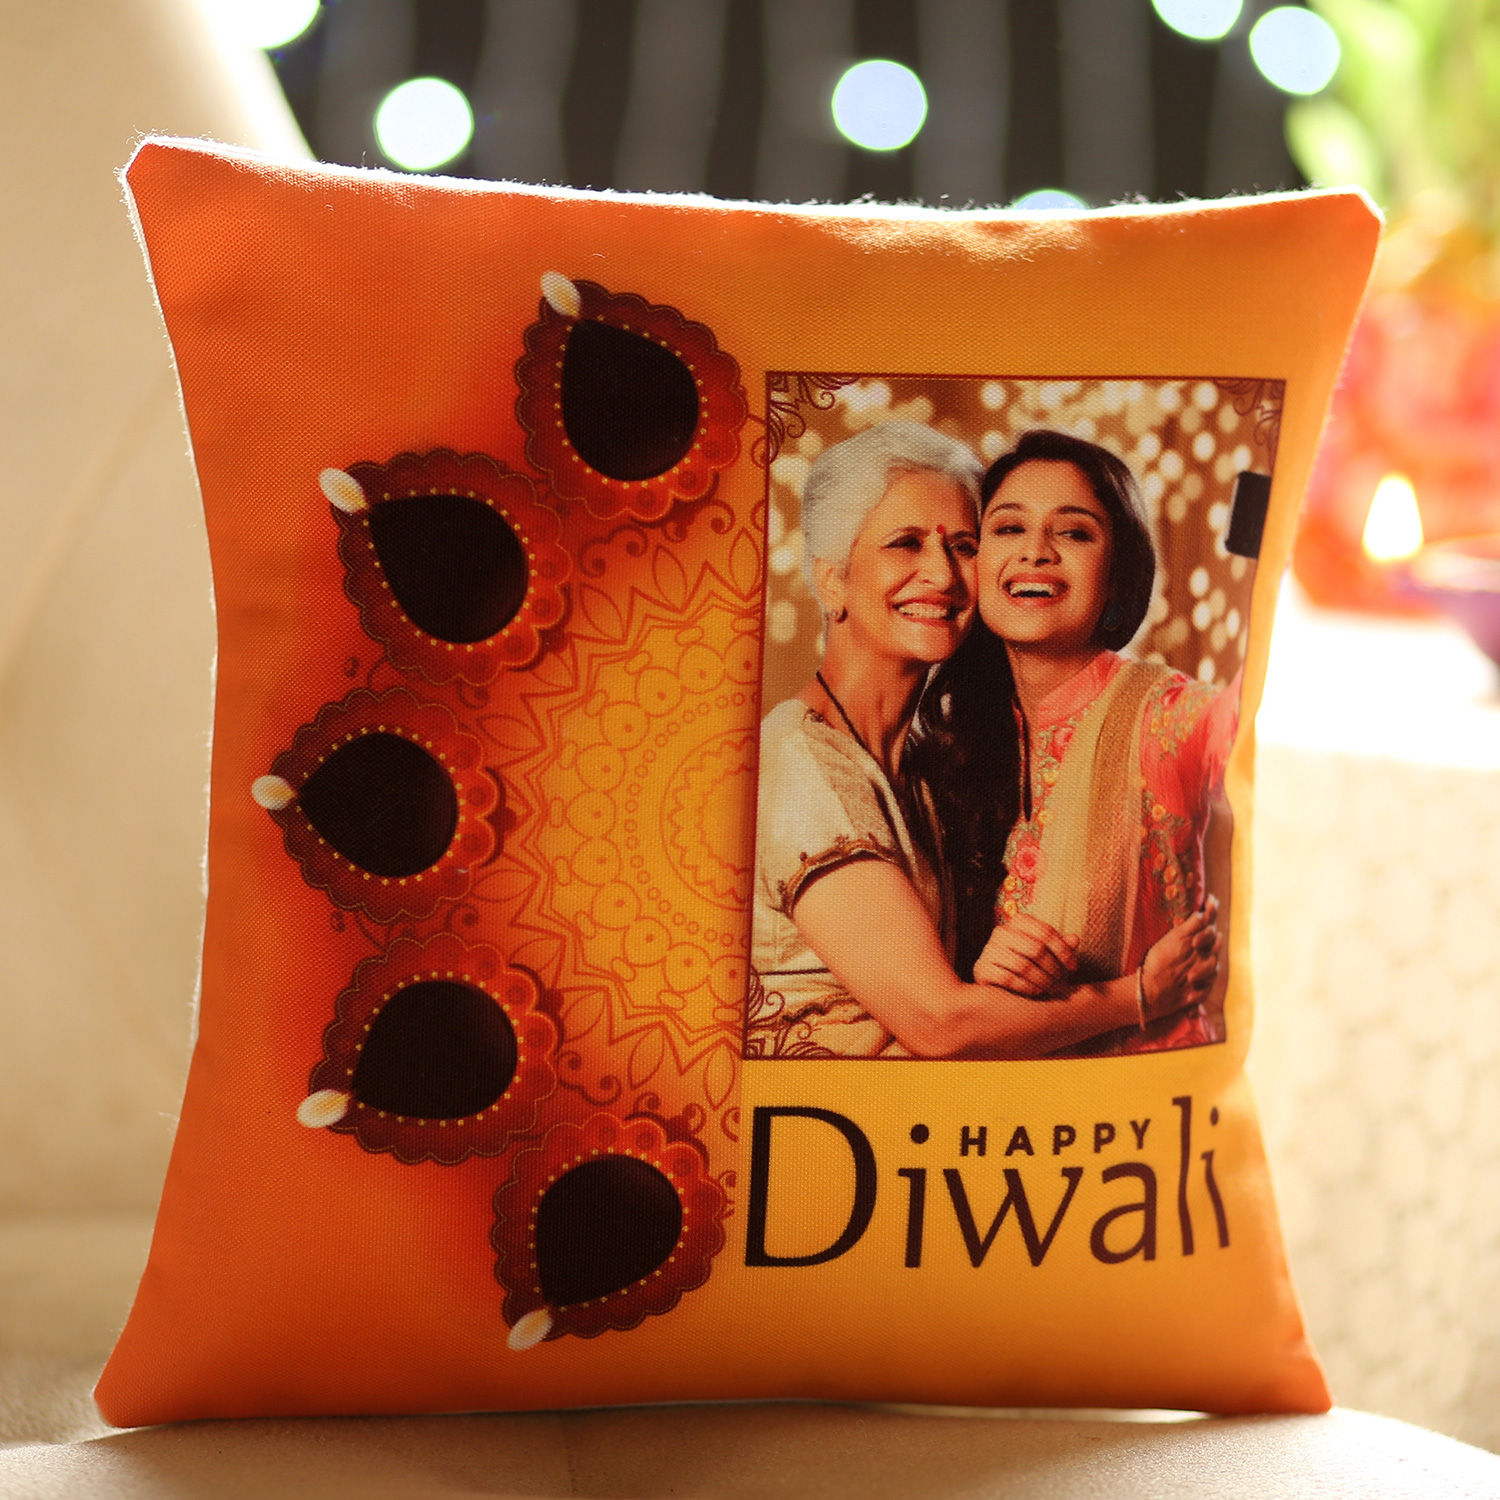 Personalised Diwali Wishes For Mom: Diwali Gifts